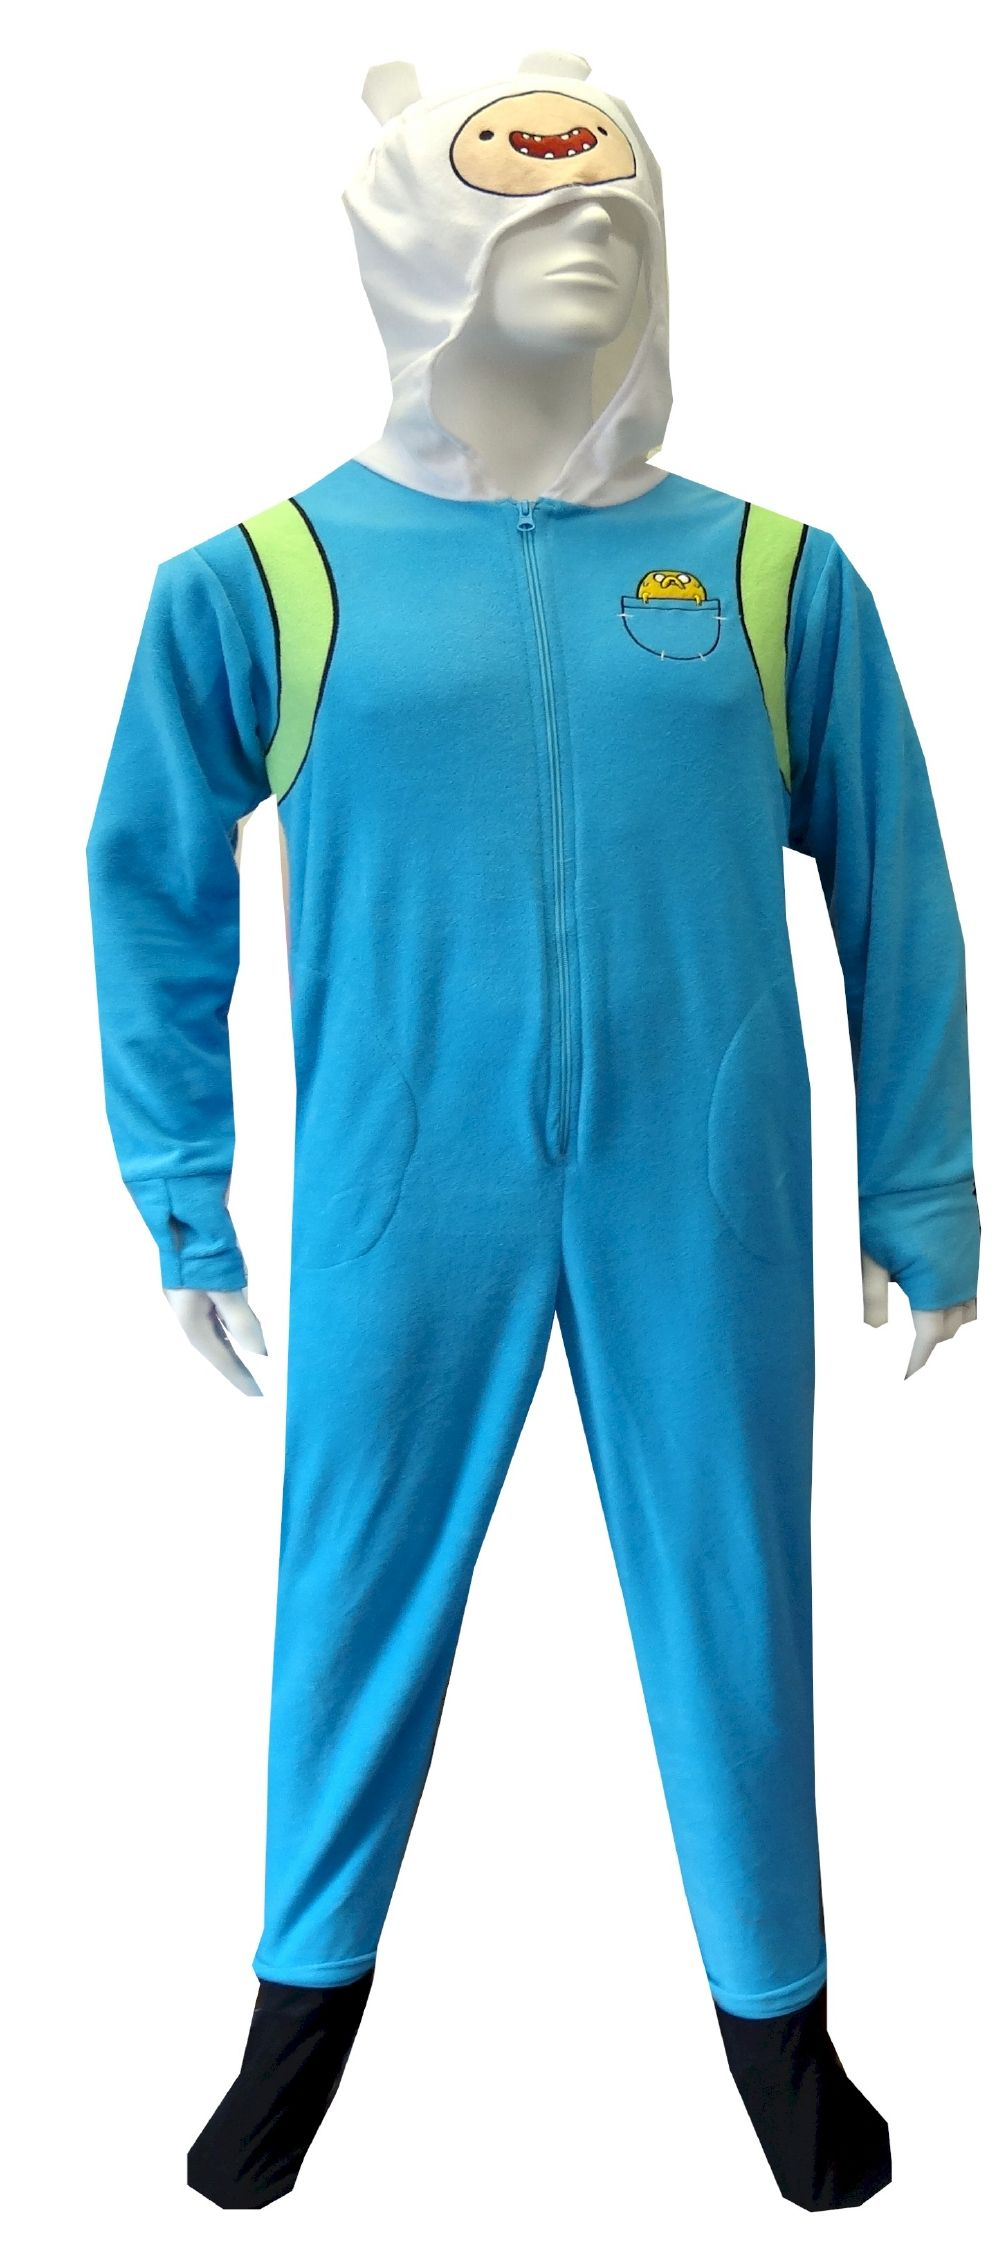 Adventure Time Finn The Human Onesie Footie Pajama Perfect for ...